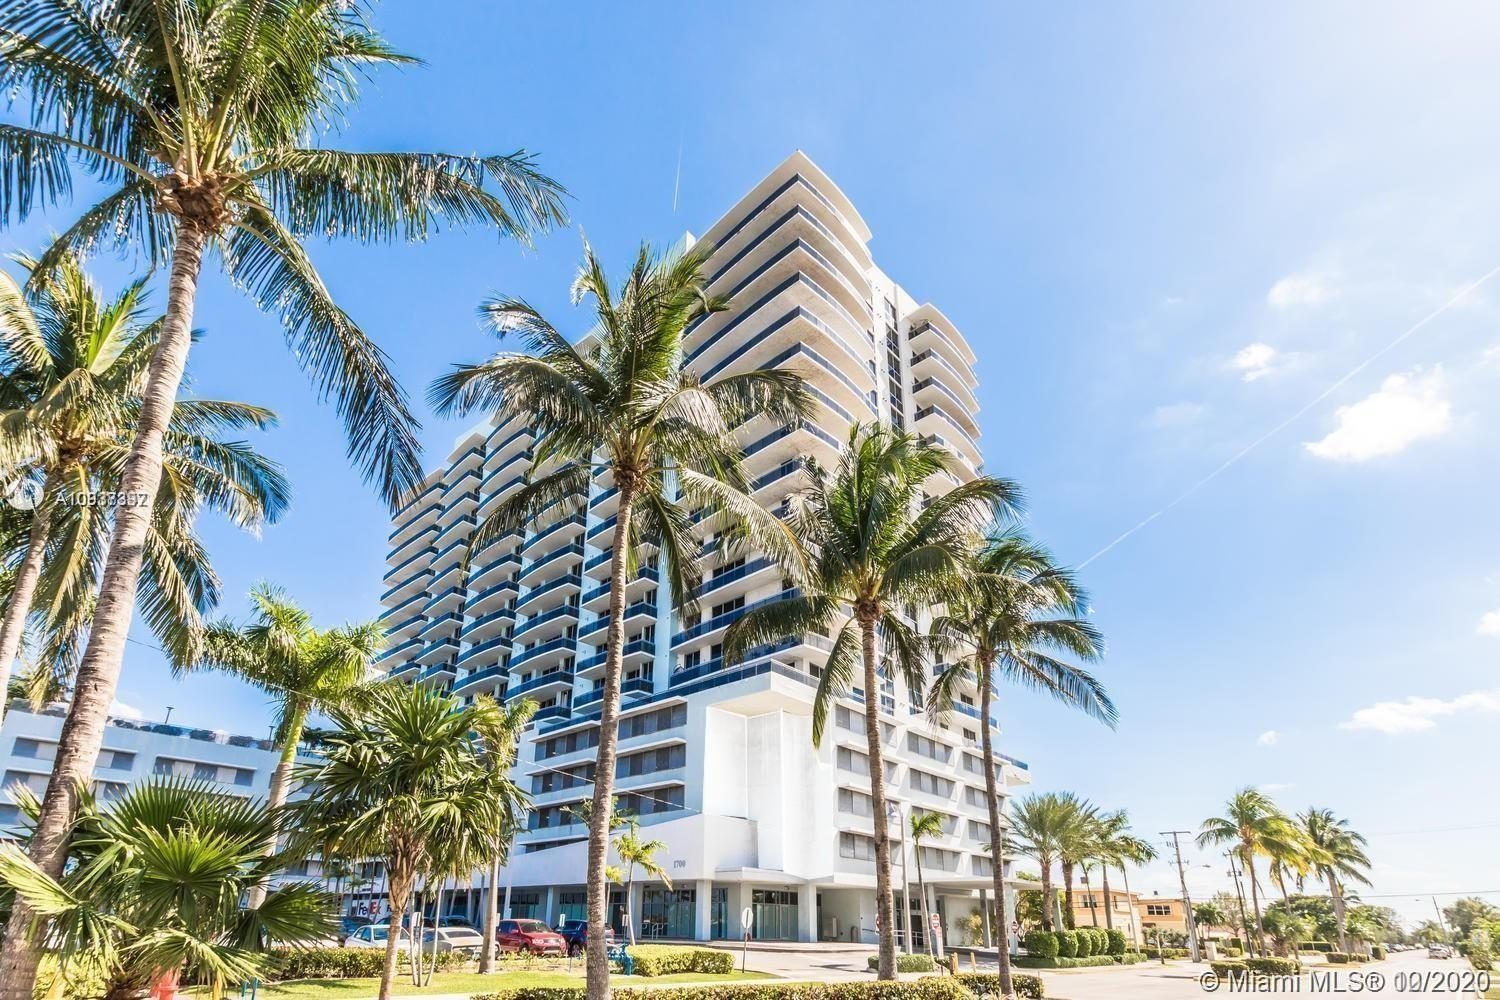 Immaculate and Stunning 2 Bedroom, 2 Bathroom + Den in the Luxurious Lexi Condominium located in the